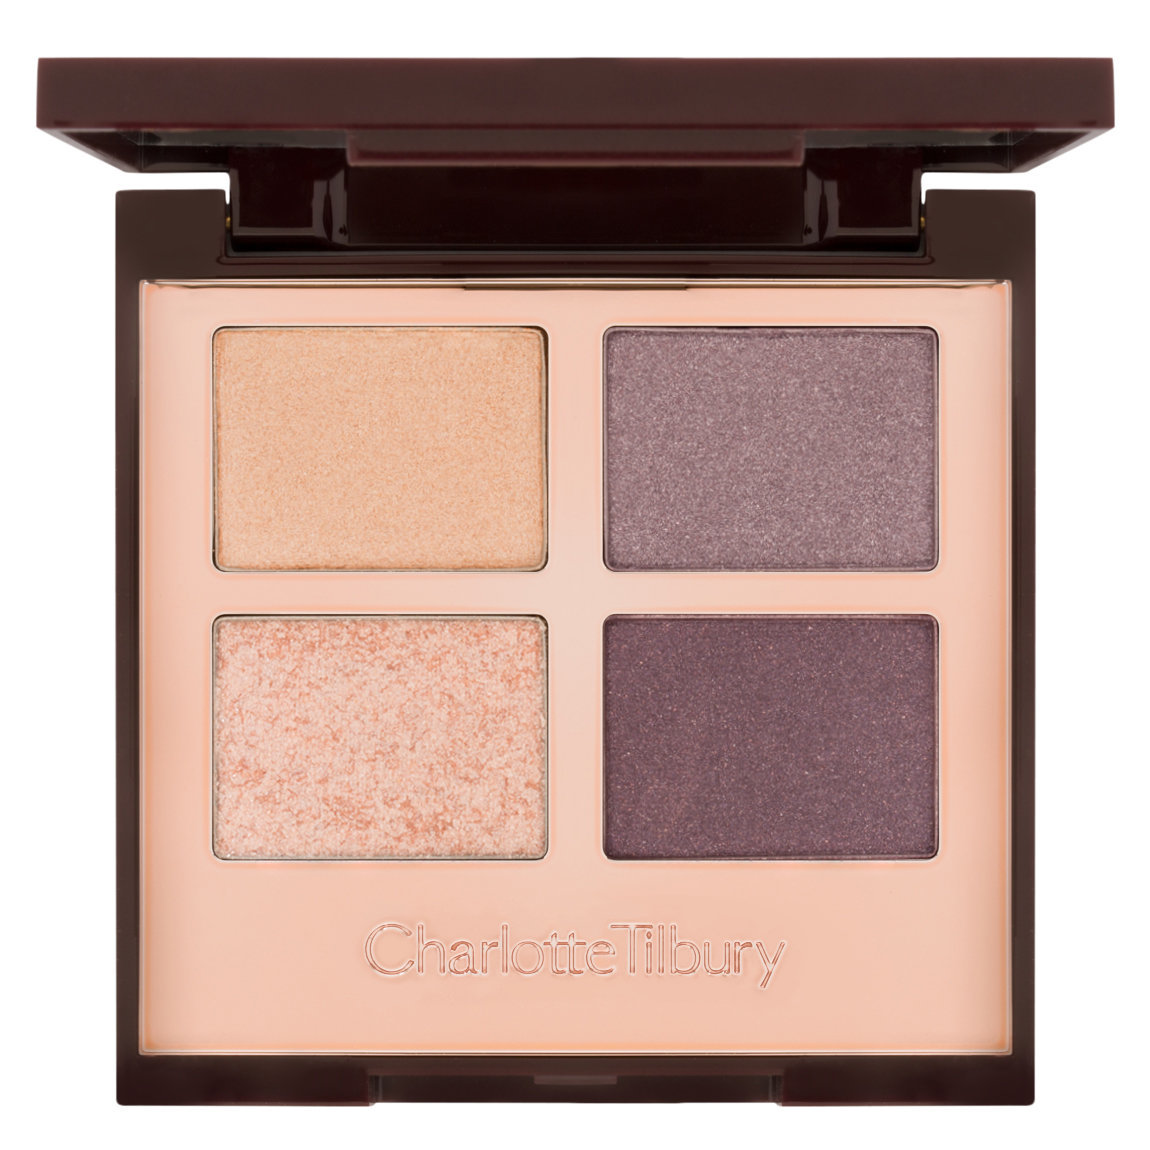 Charlotte Tilbury Luxury Palette The Uptown Girl product swatch.